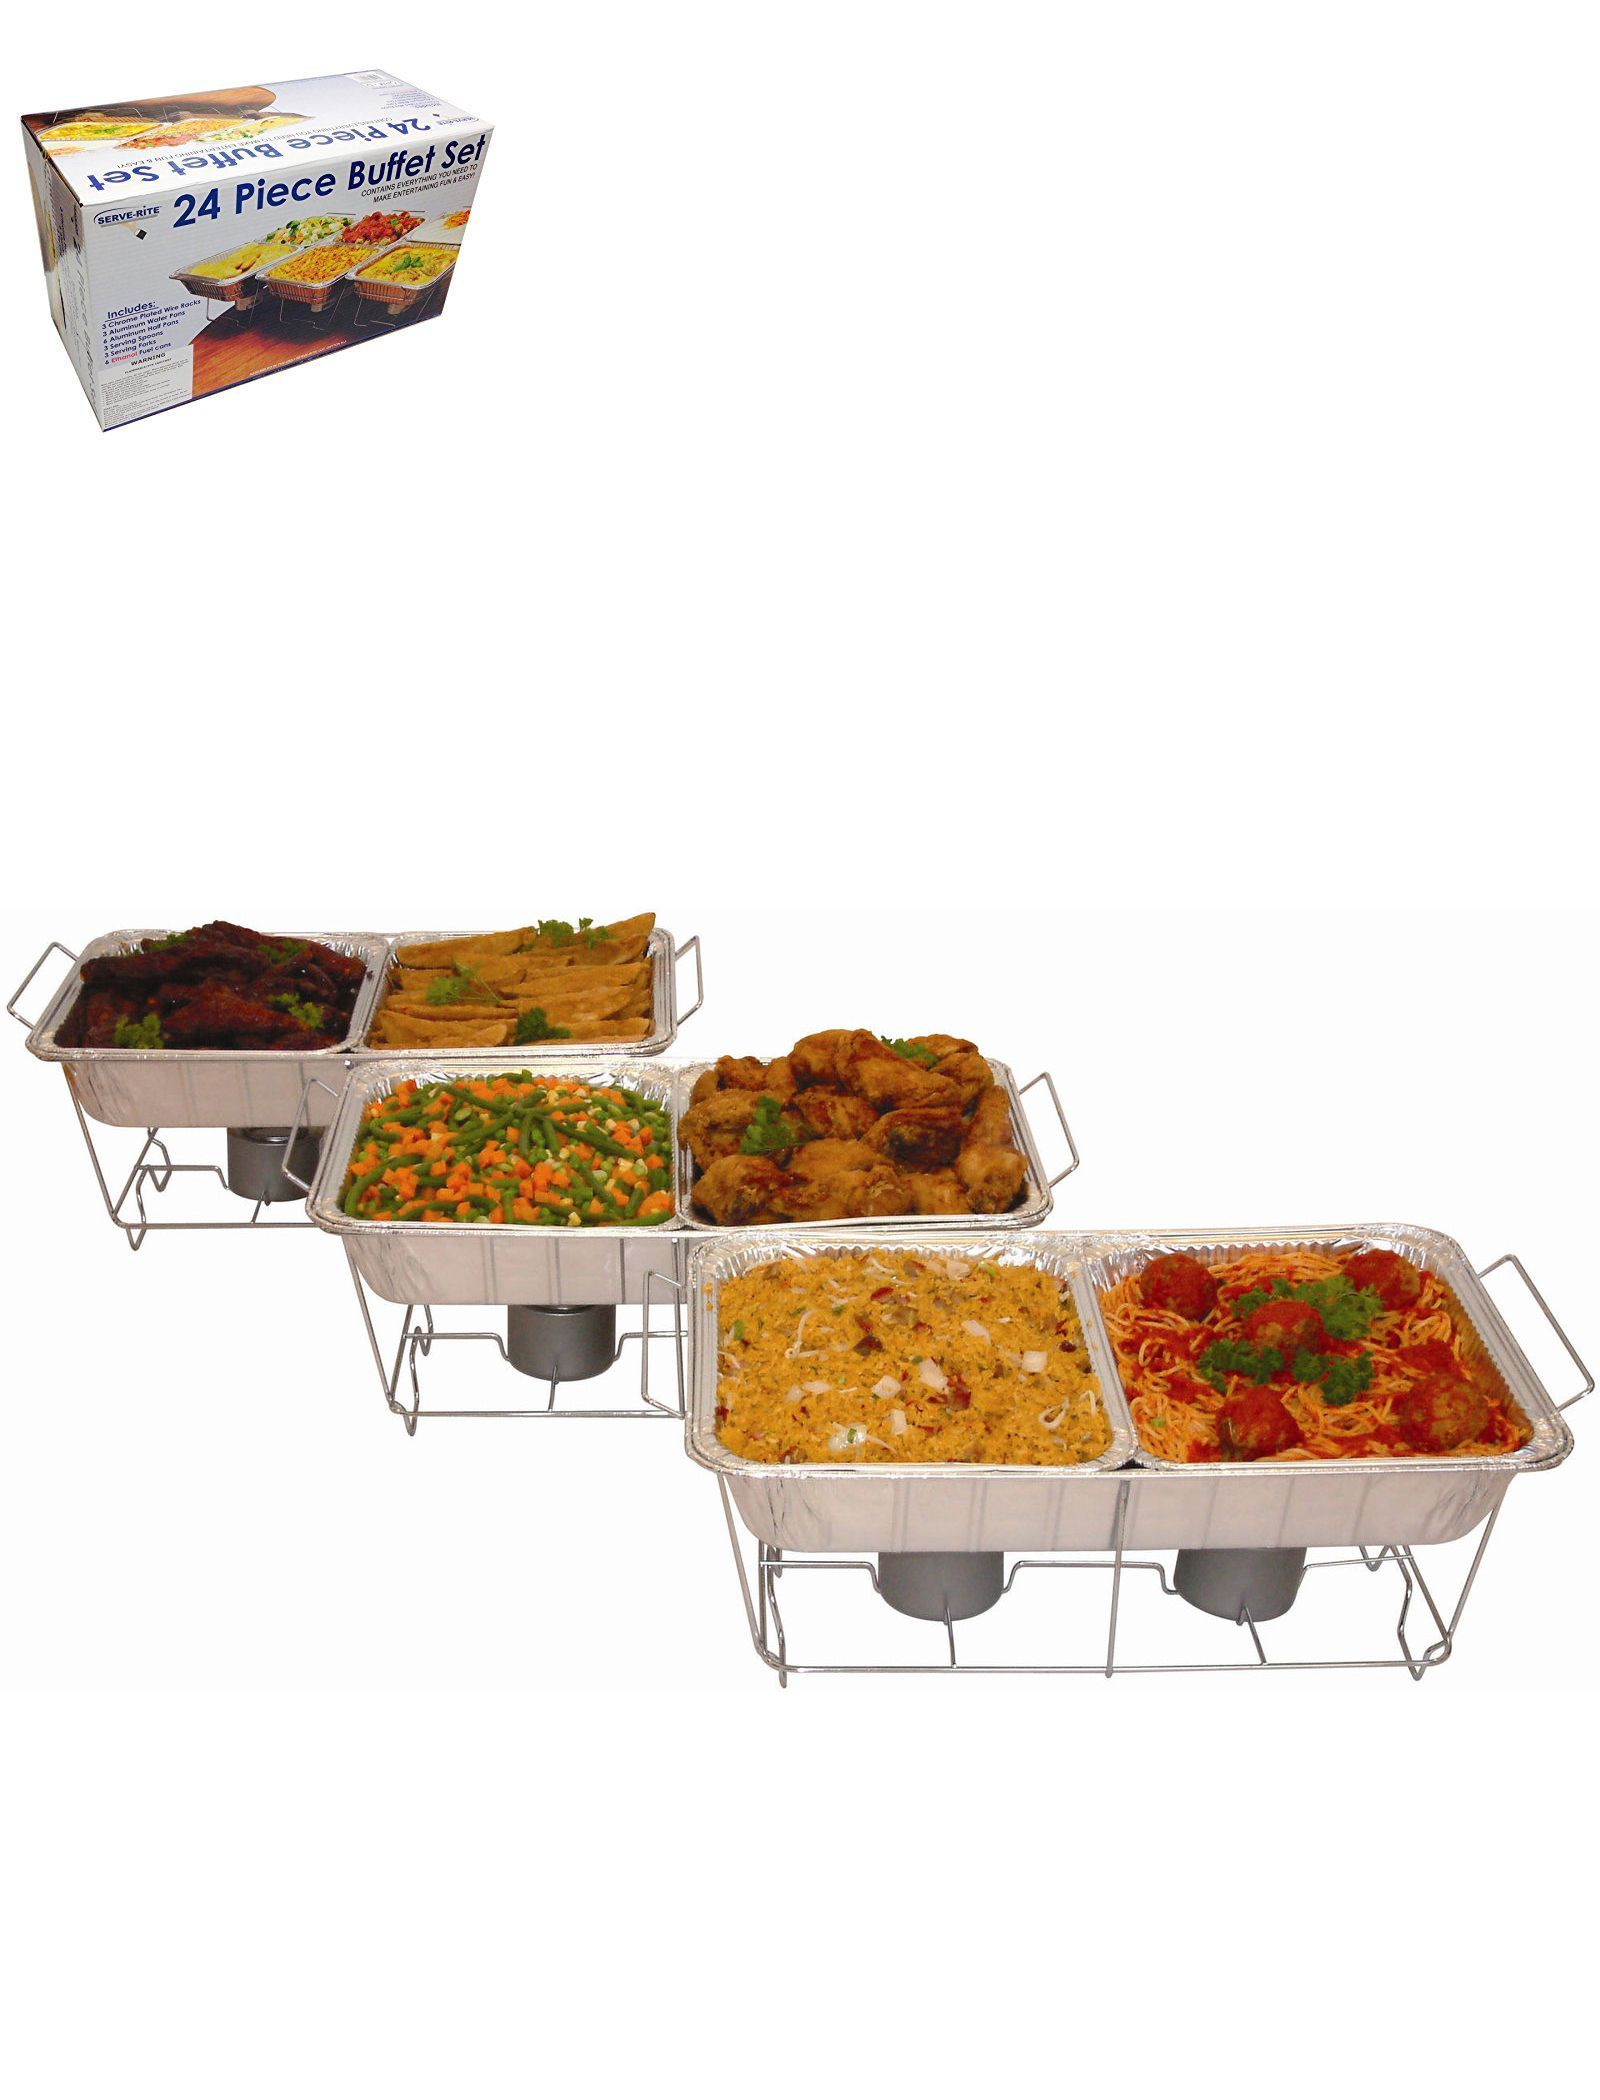 Chafing Dishes And Warming Trays 27552 Serve Rite 24 Piece Buffet